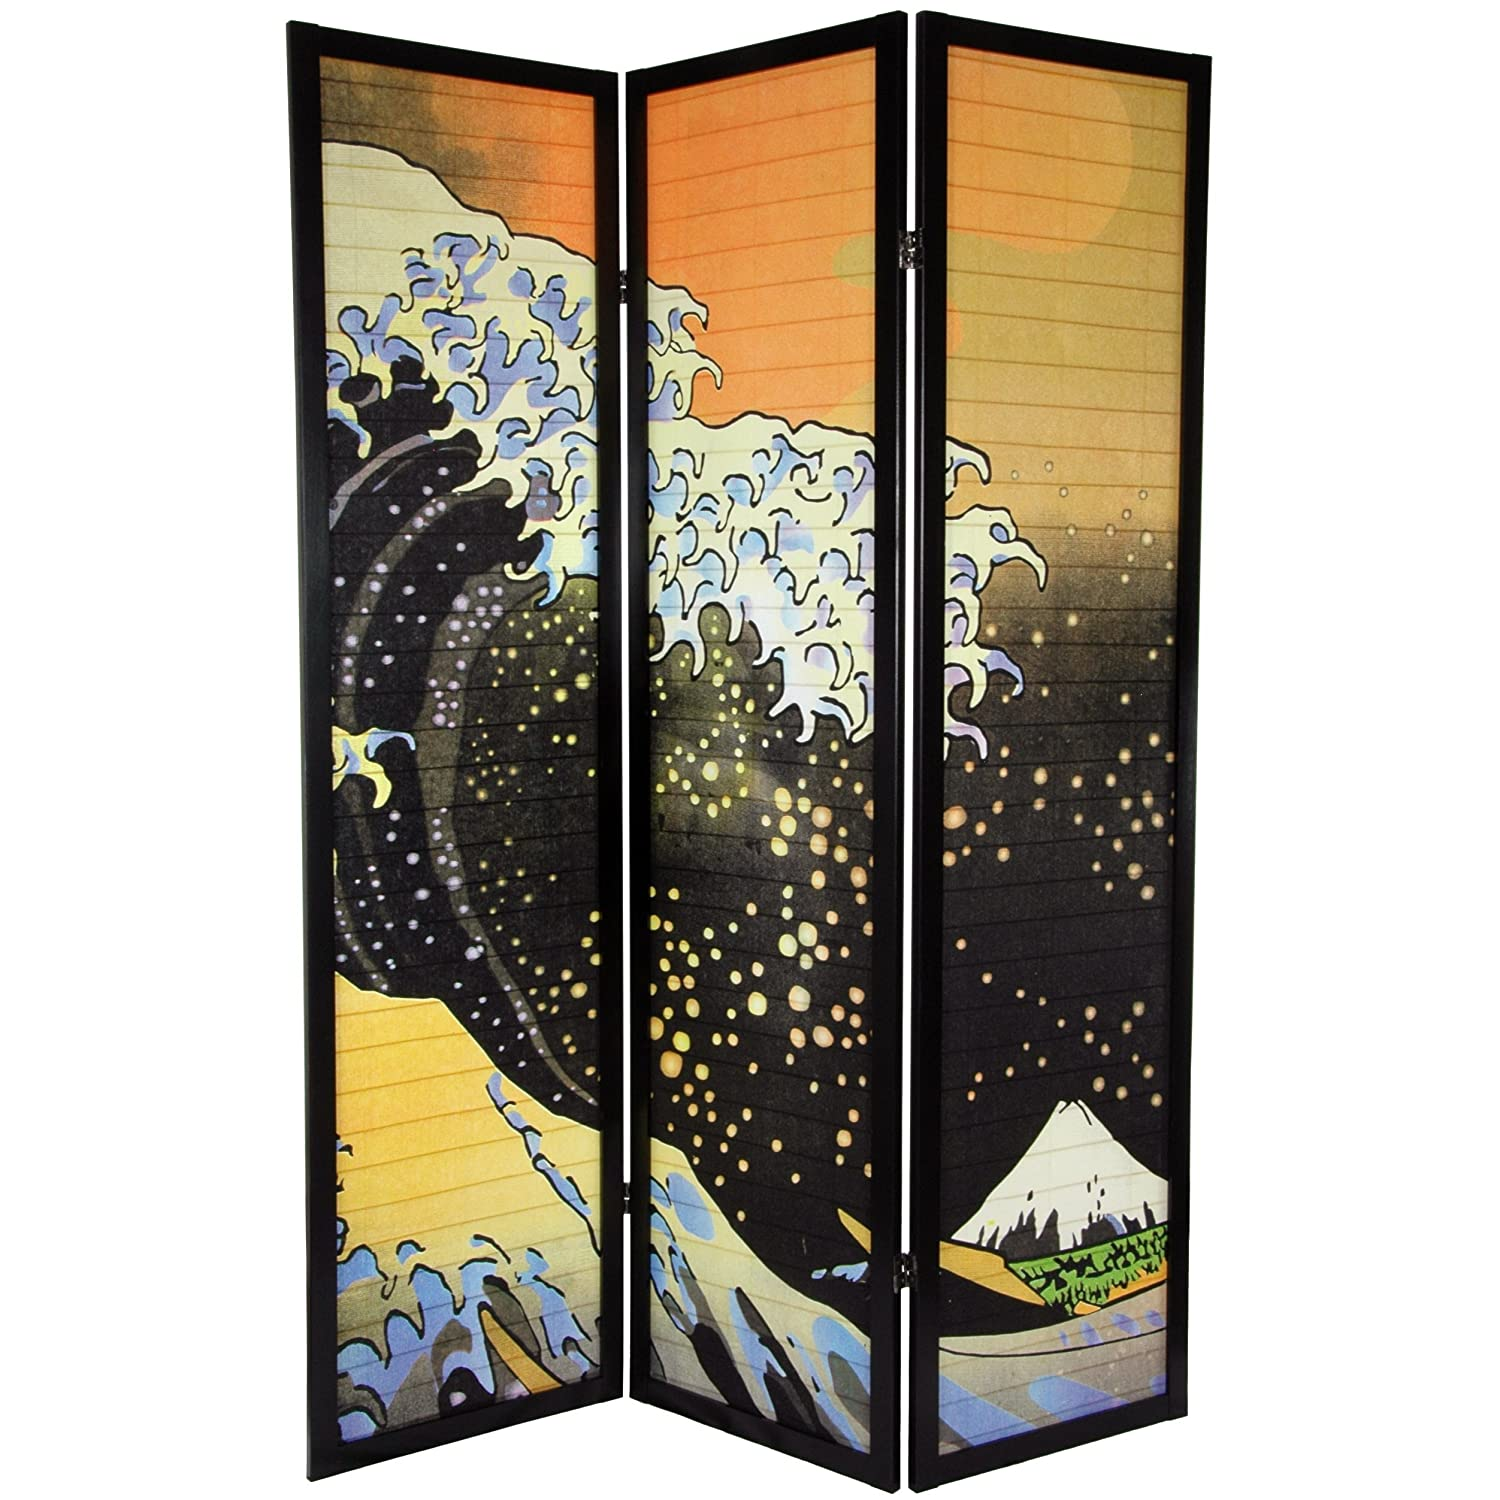 Amazon.com: Oriental Furniture 6 ft. Tall Japanese Wave Shoji Screen - 3  Panels: Kitchen & Dining - Amazon.com: Oriental Furniture 6 Ft. Tall Japanese Wave Shoji